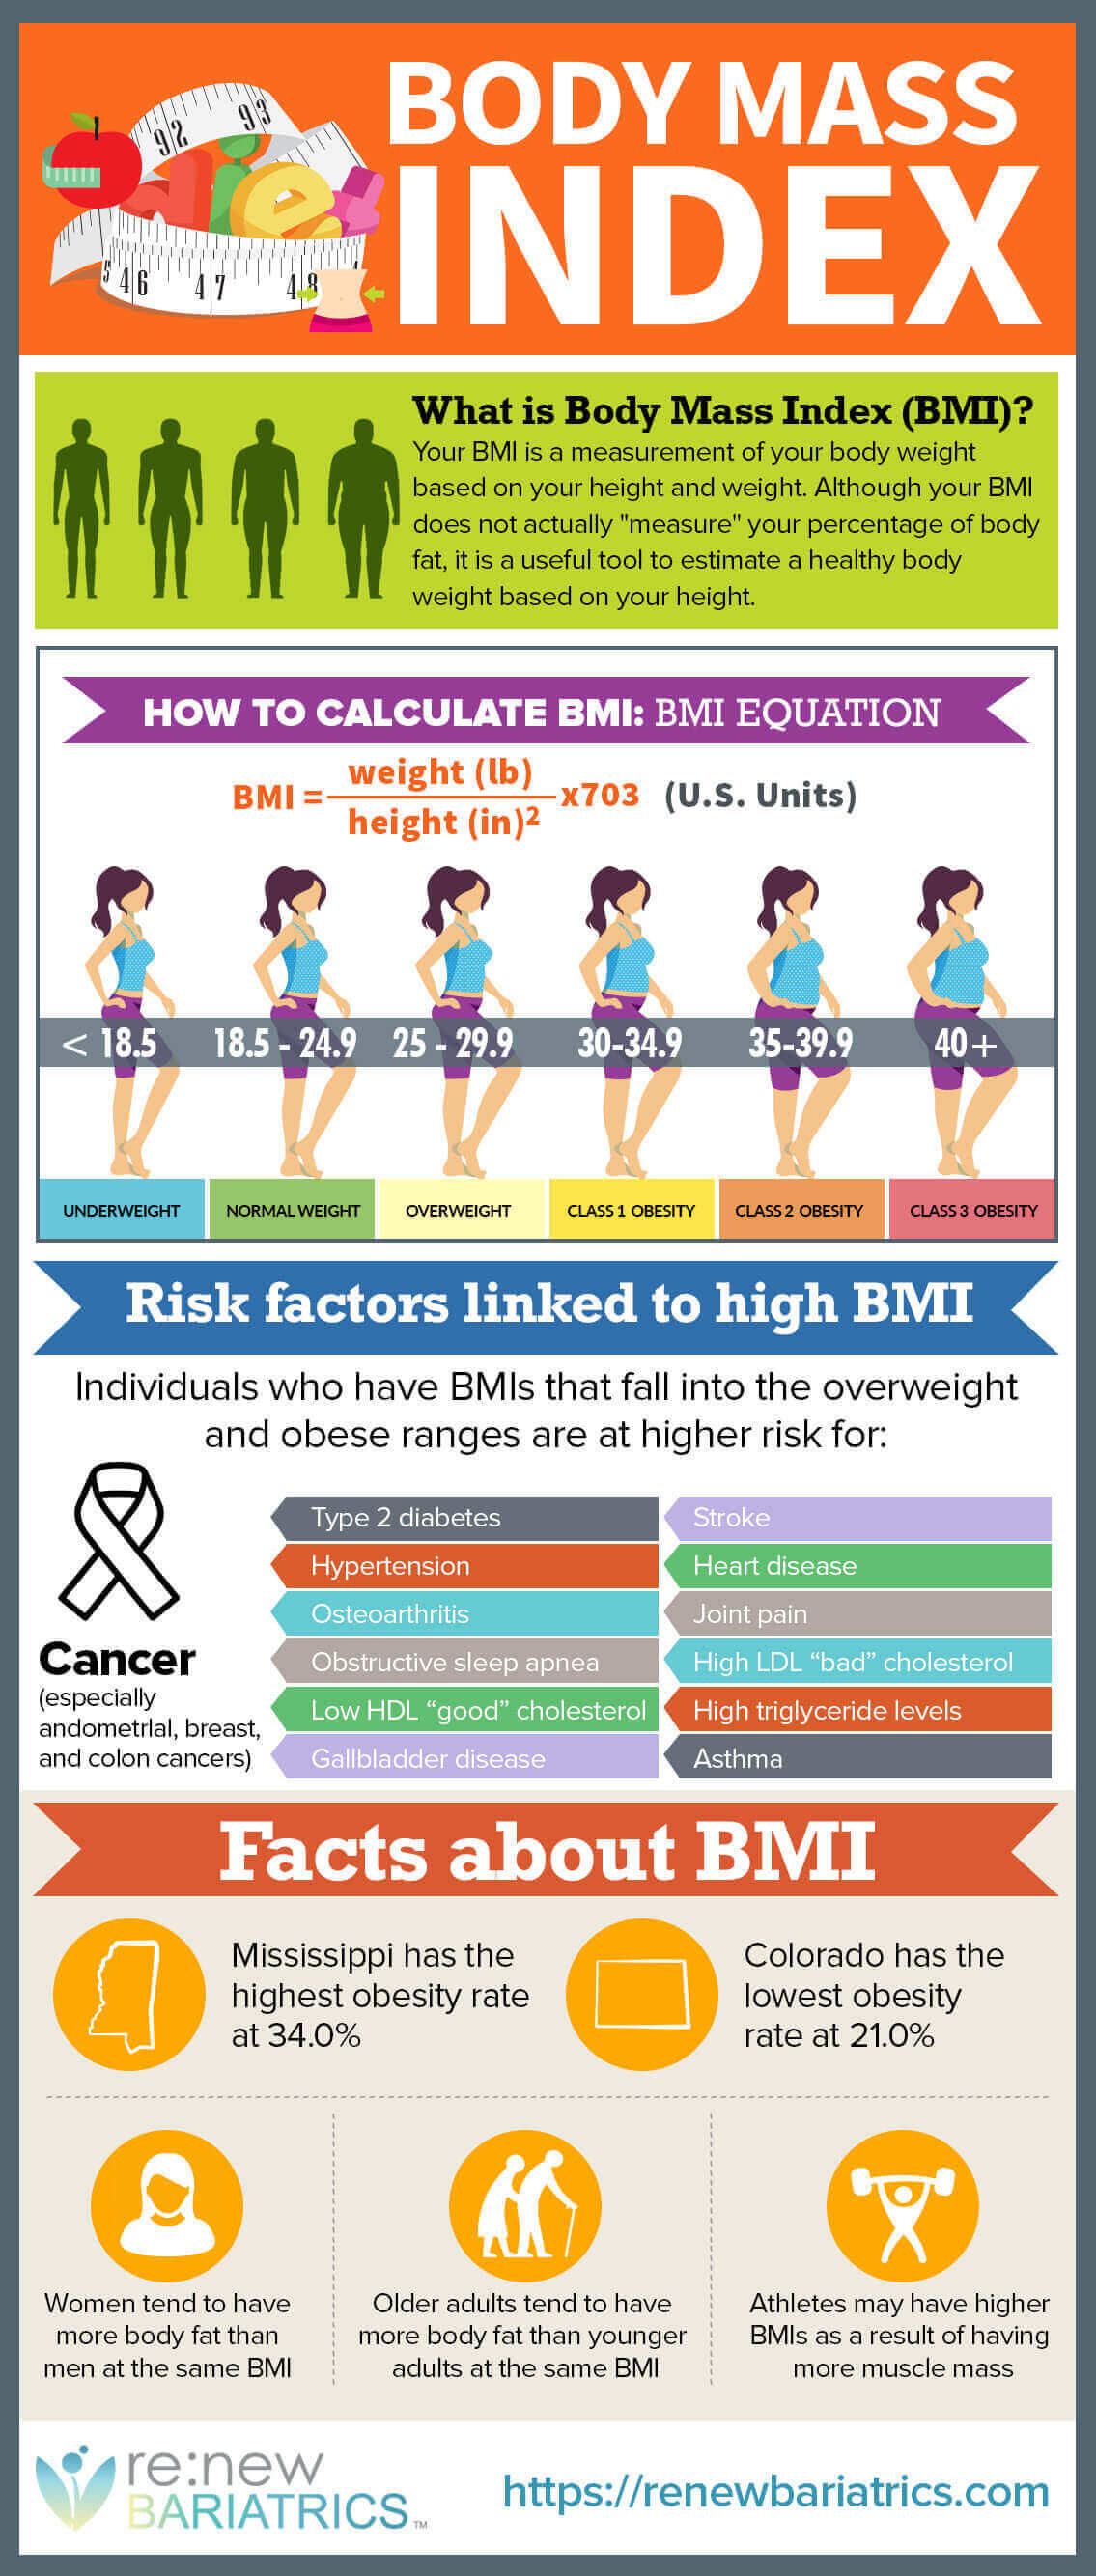 Body Mass Index or BMI